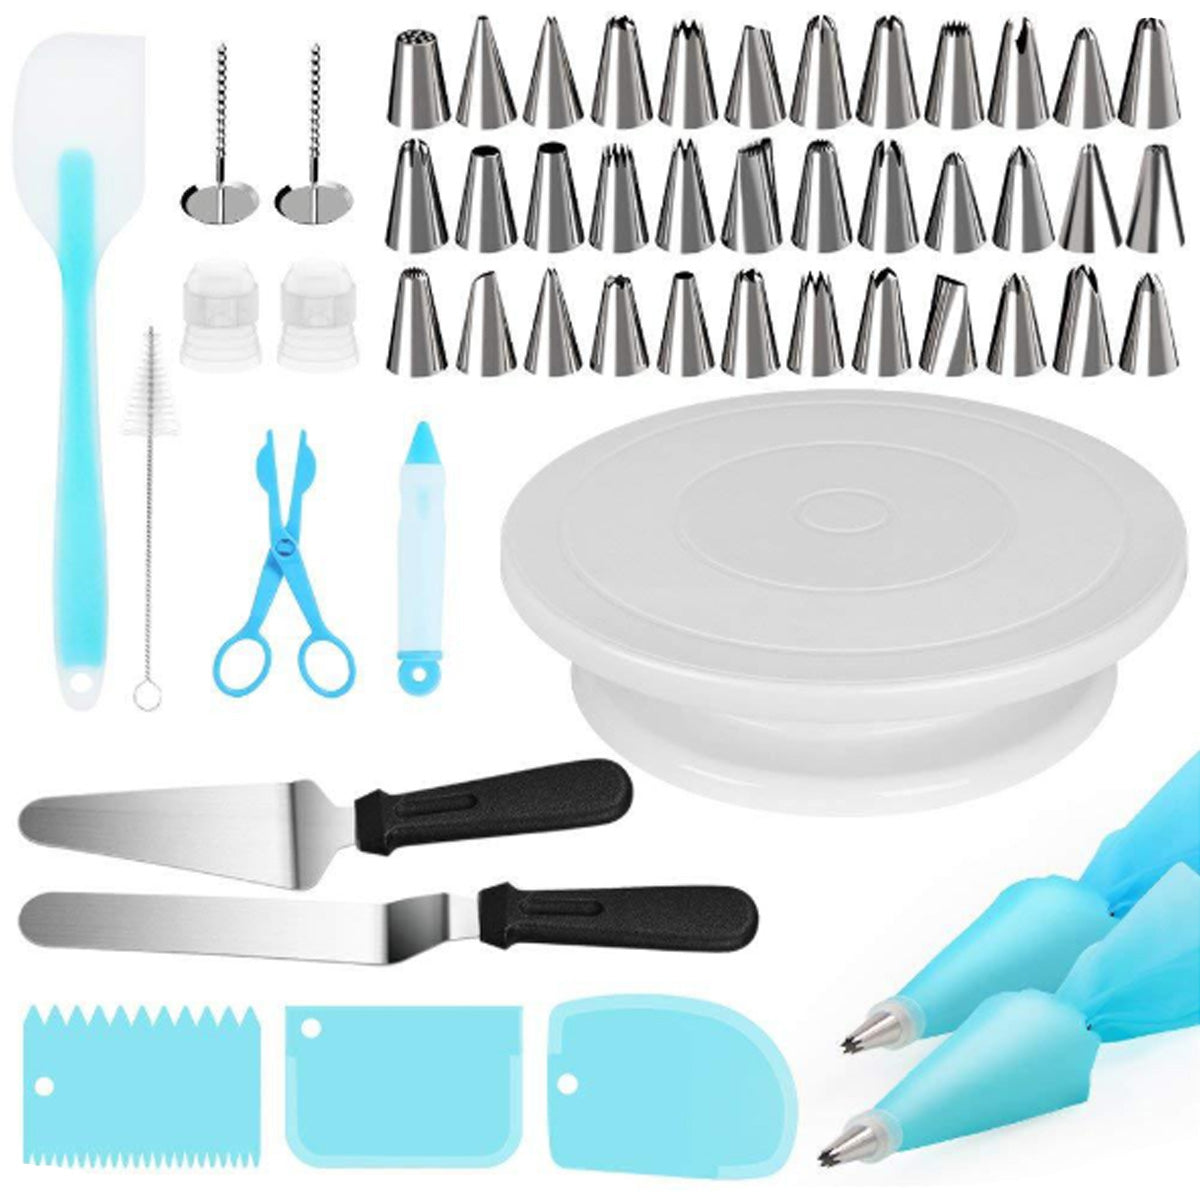 52Pcs/set Tool Cake Decorations Set Gift Kit Baking Supplies Turntable Spatula Stand Diy Equipment for Kids Home